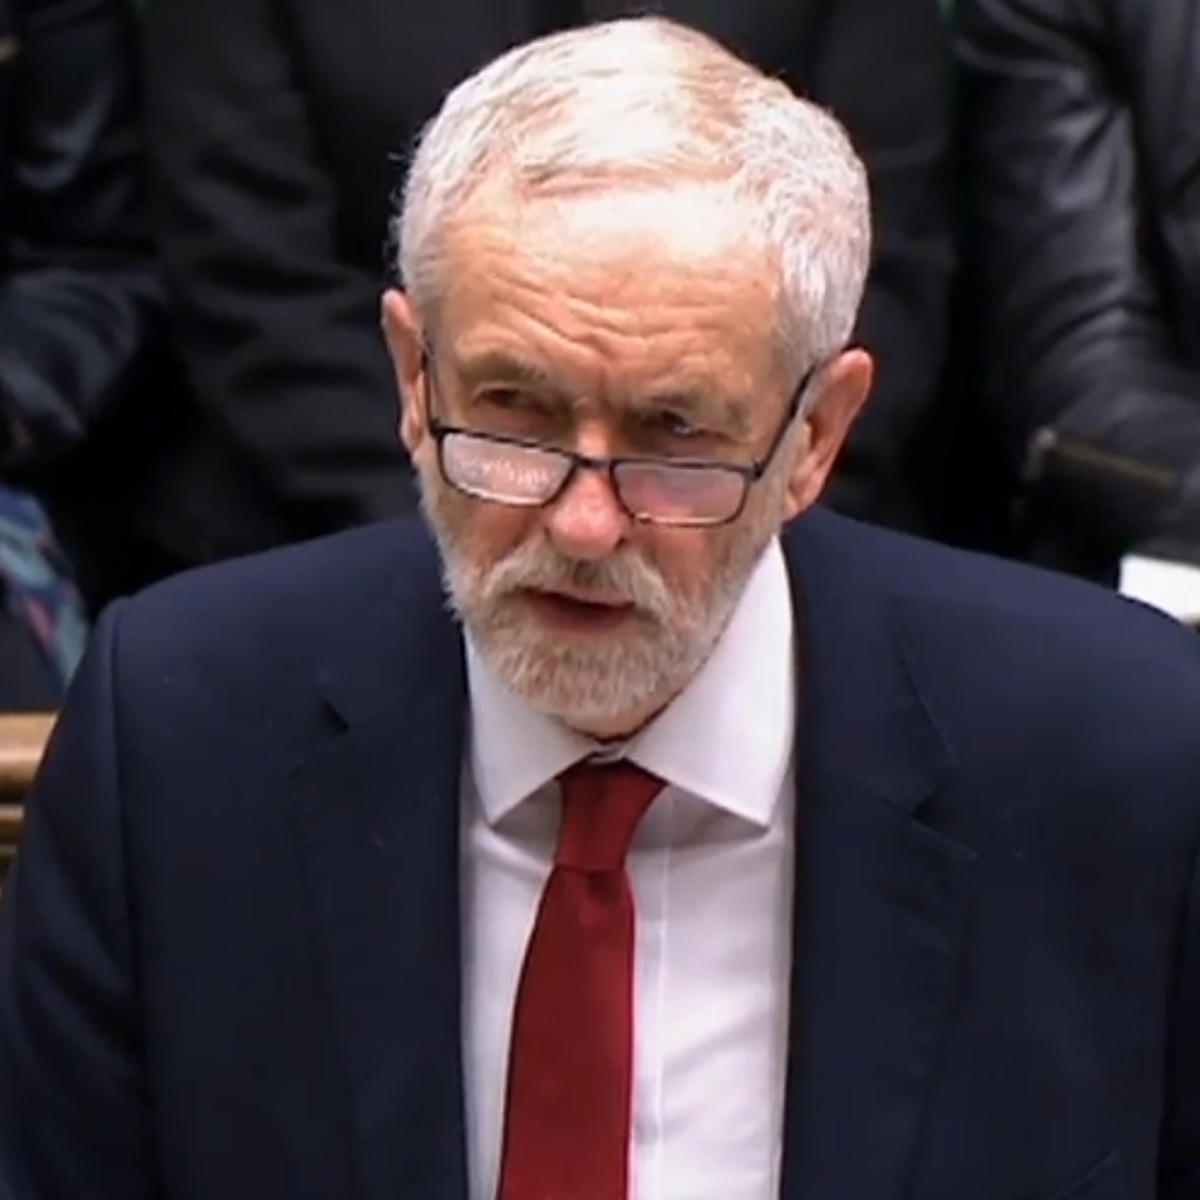 UK: Cold-shouldered Corbyn weighs down Labour Party